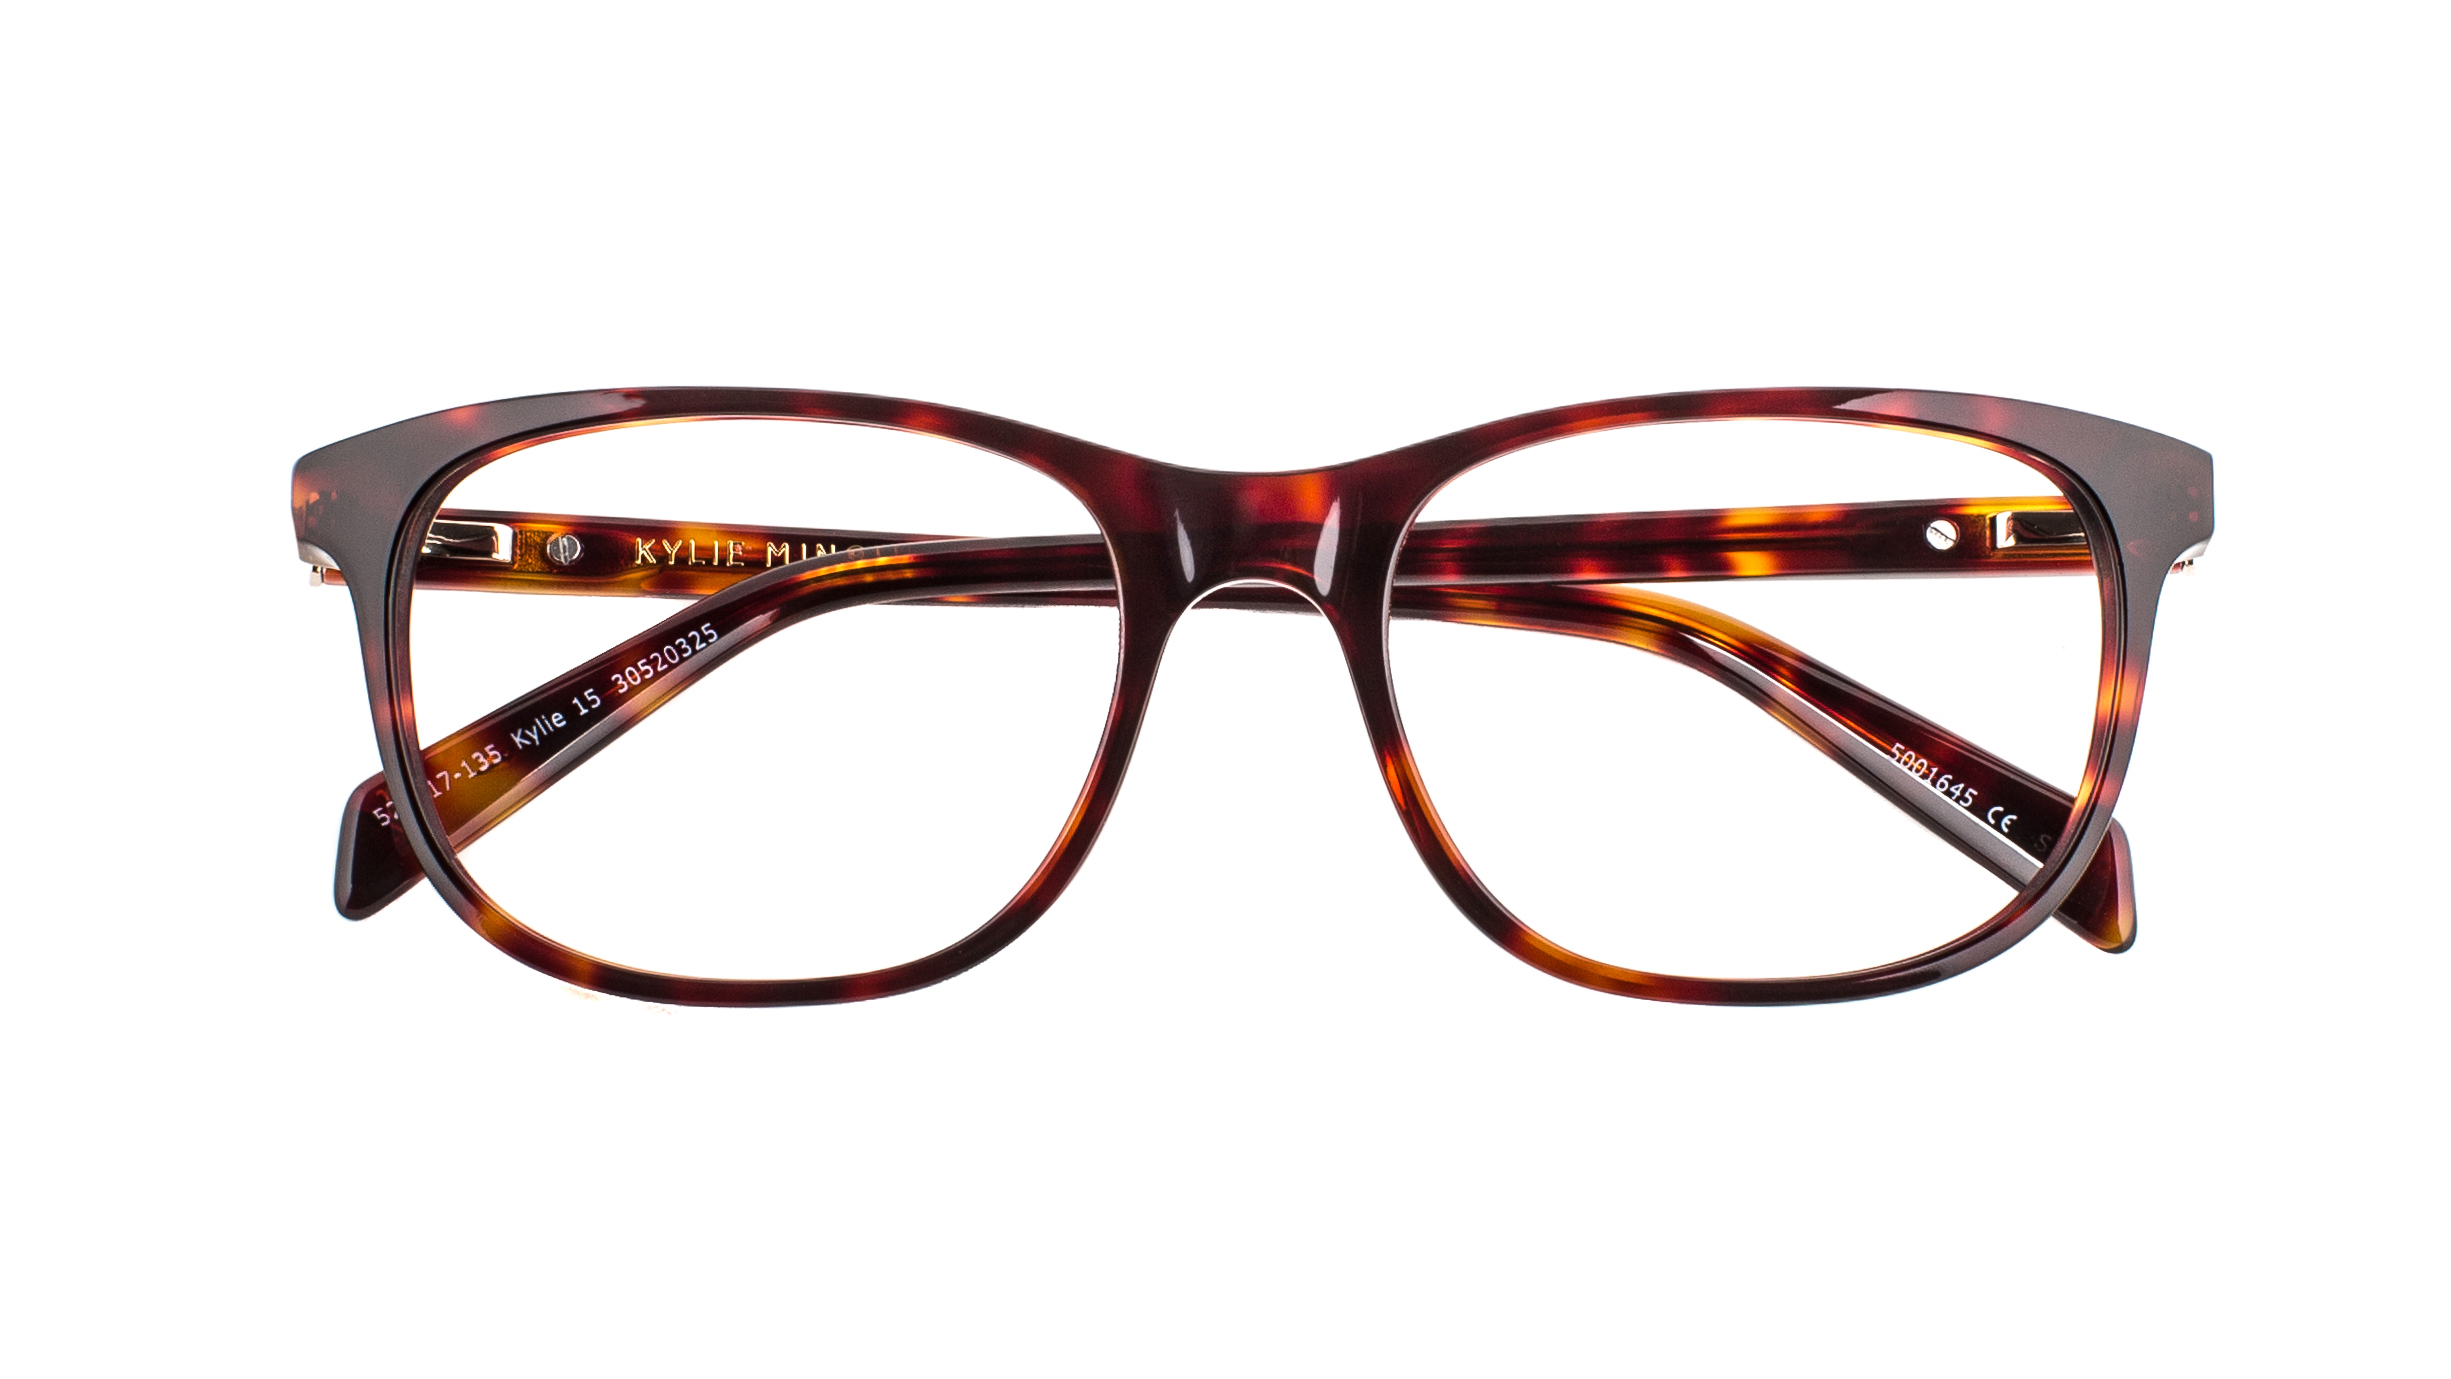 Kylie Minogue Eyewear_Kylie 15_SKU 30520325_RRP 2 pairs from $369